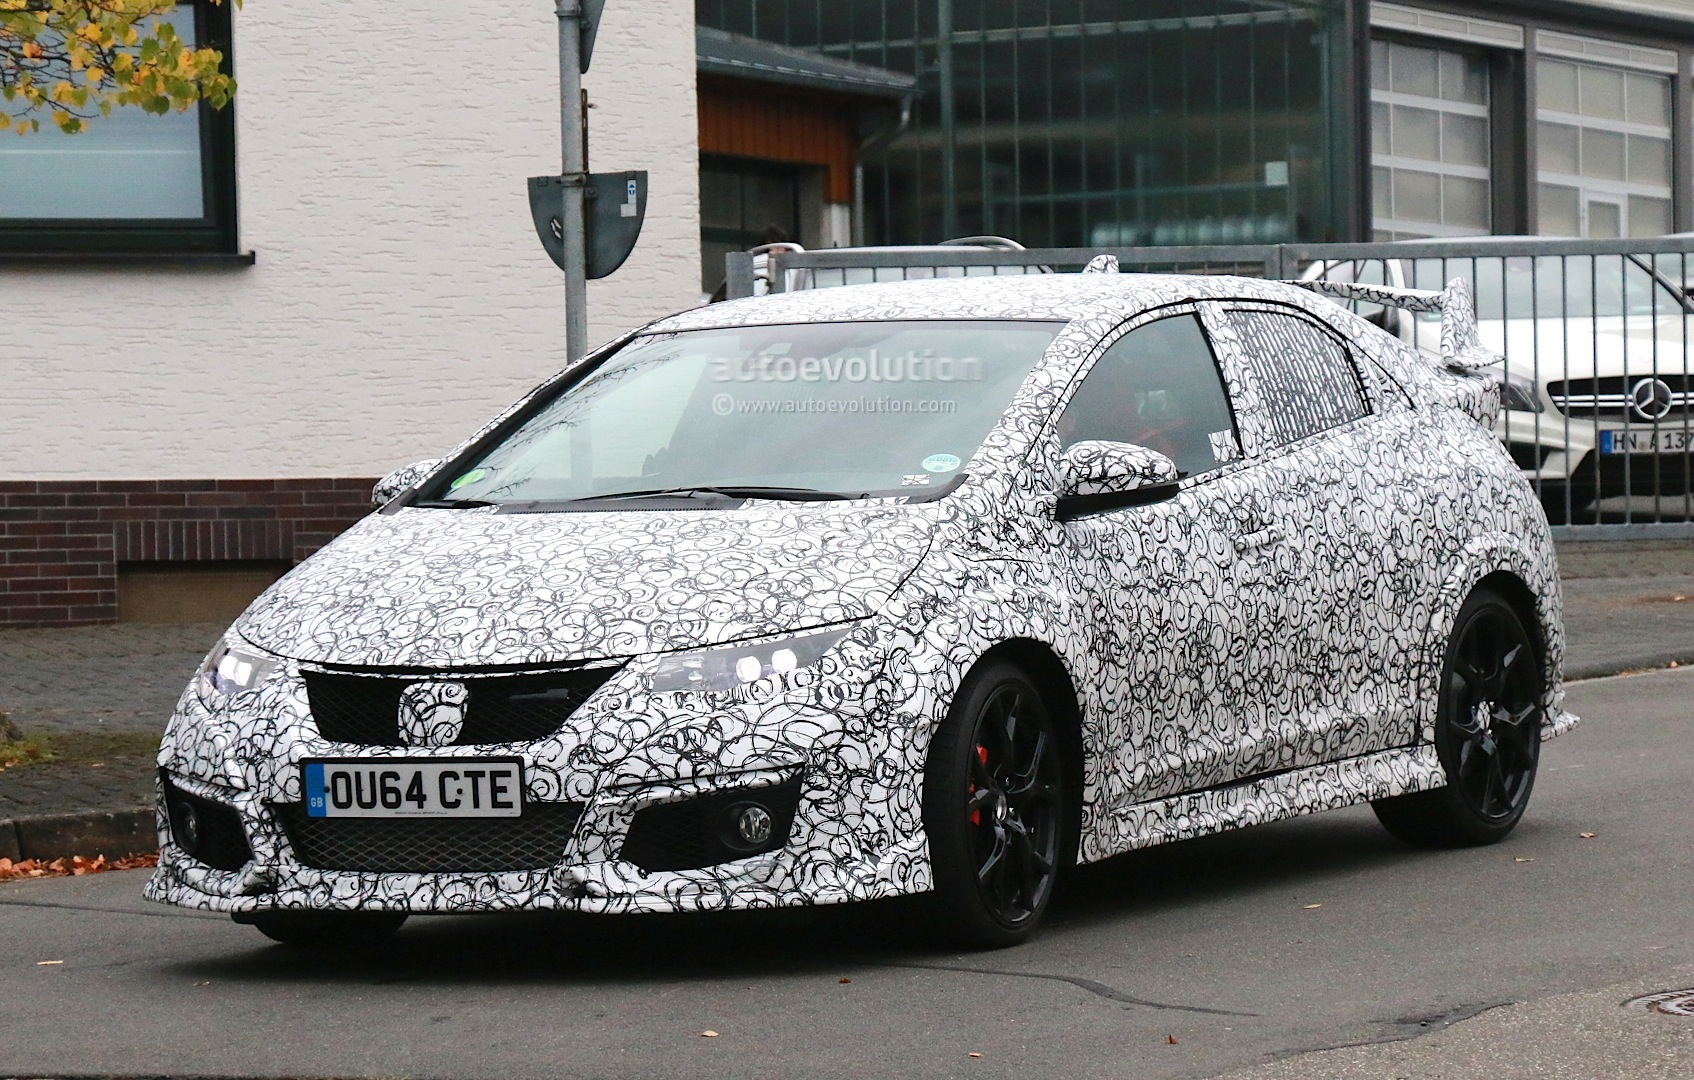 Honda Civic Type R Prototype Features Red Leather Bucket Seats and Brembo Brakes - autoevolution